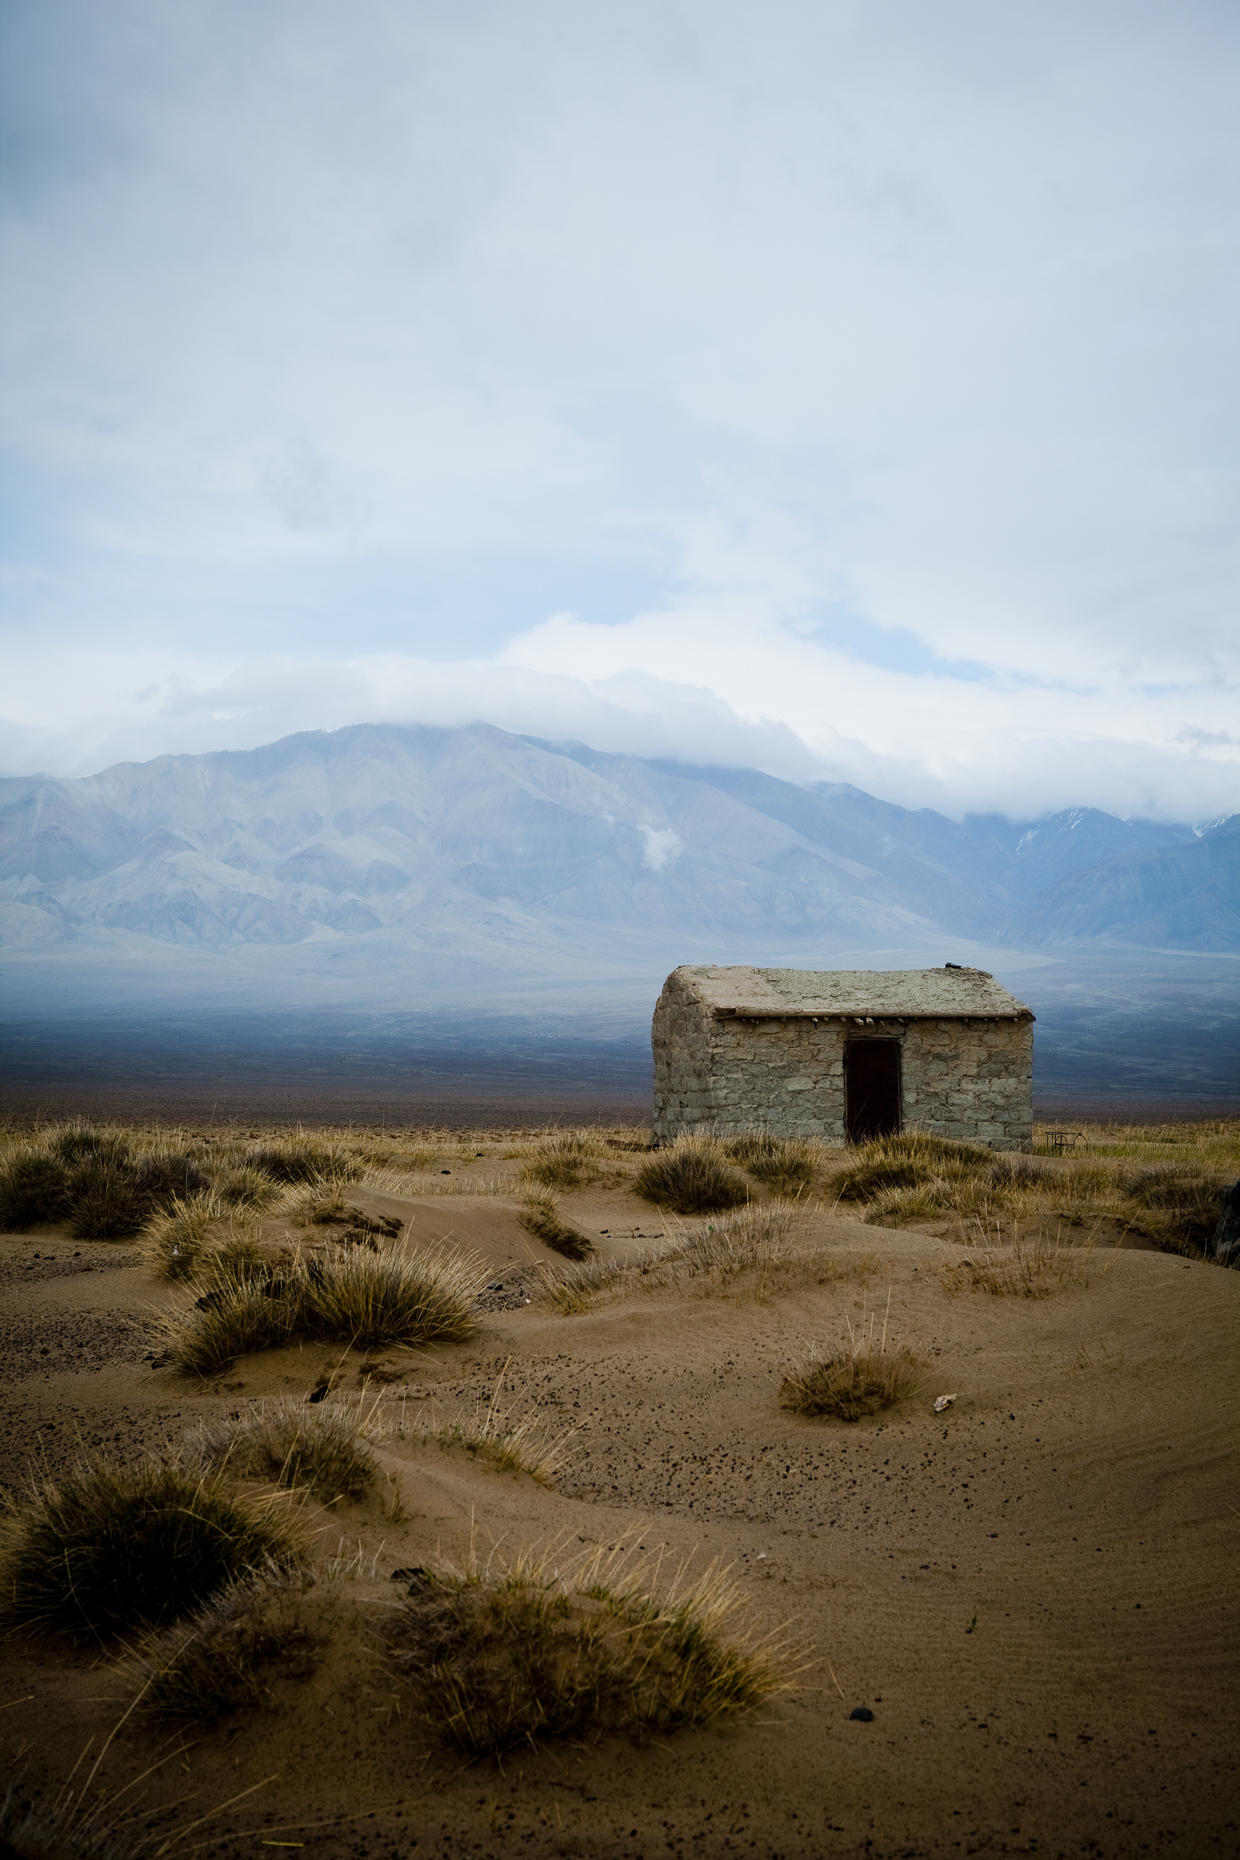 A house in the steppes of Mongolia